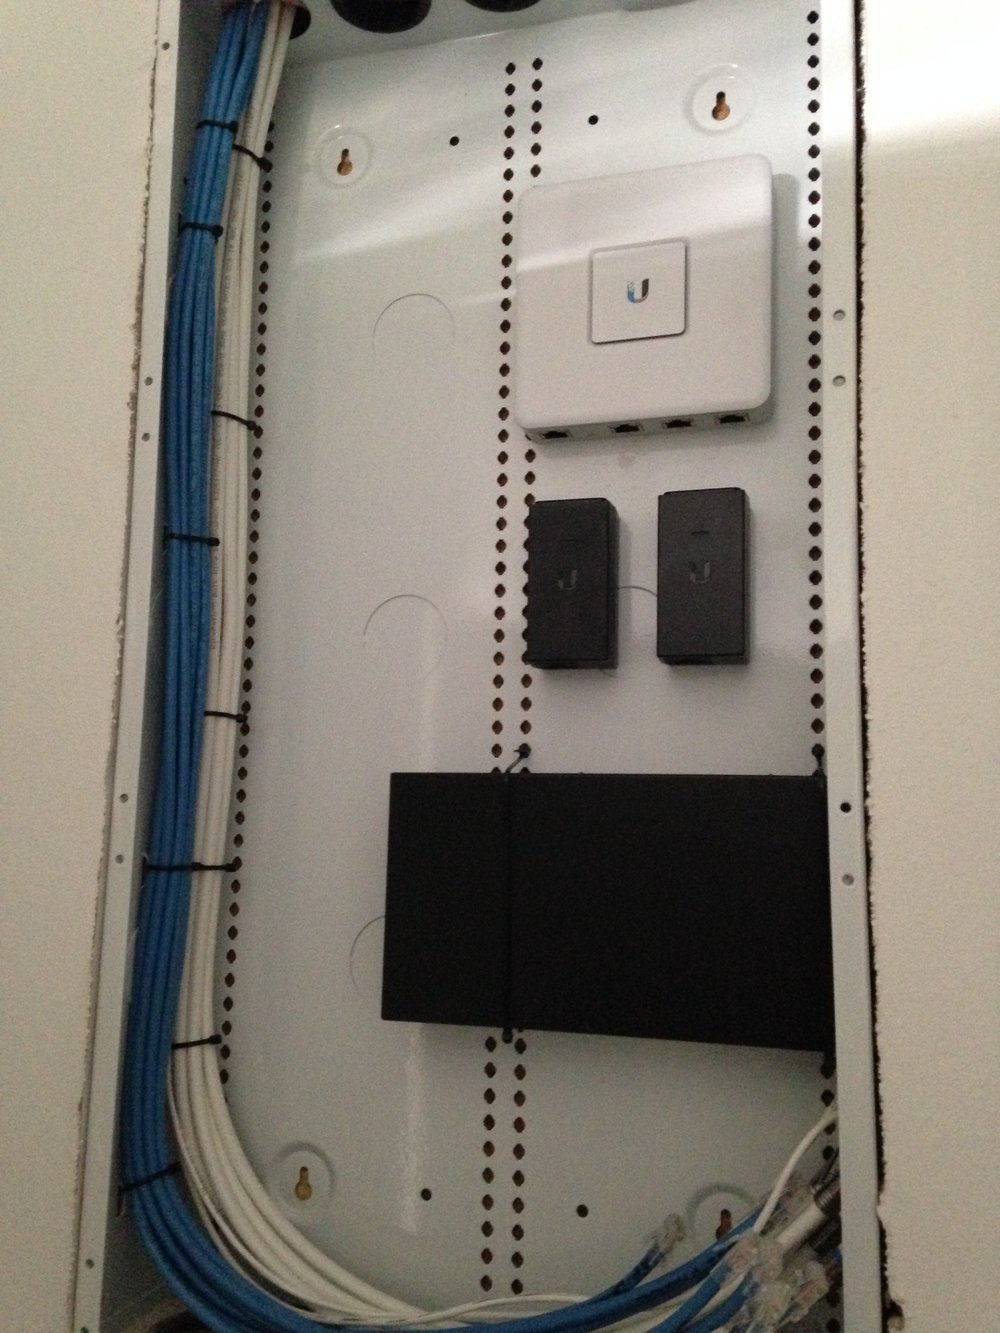 Structured Wiring Technology Pre 3d Smart Homes Cabinet By